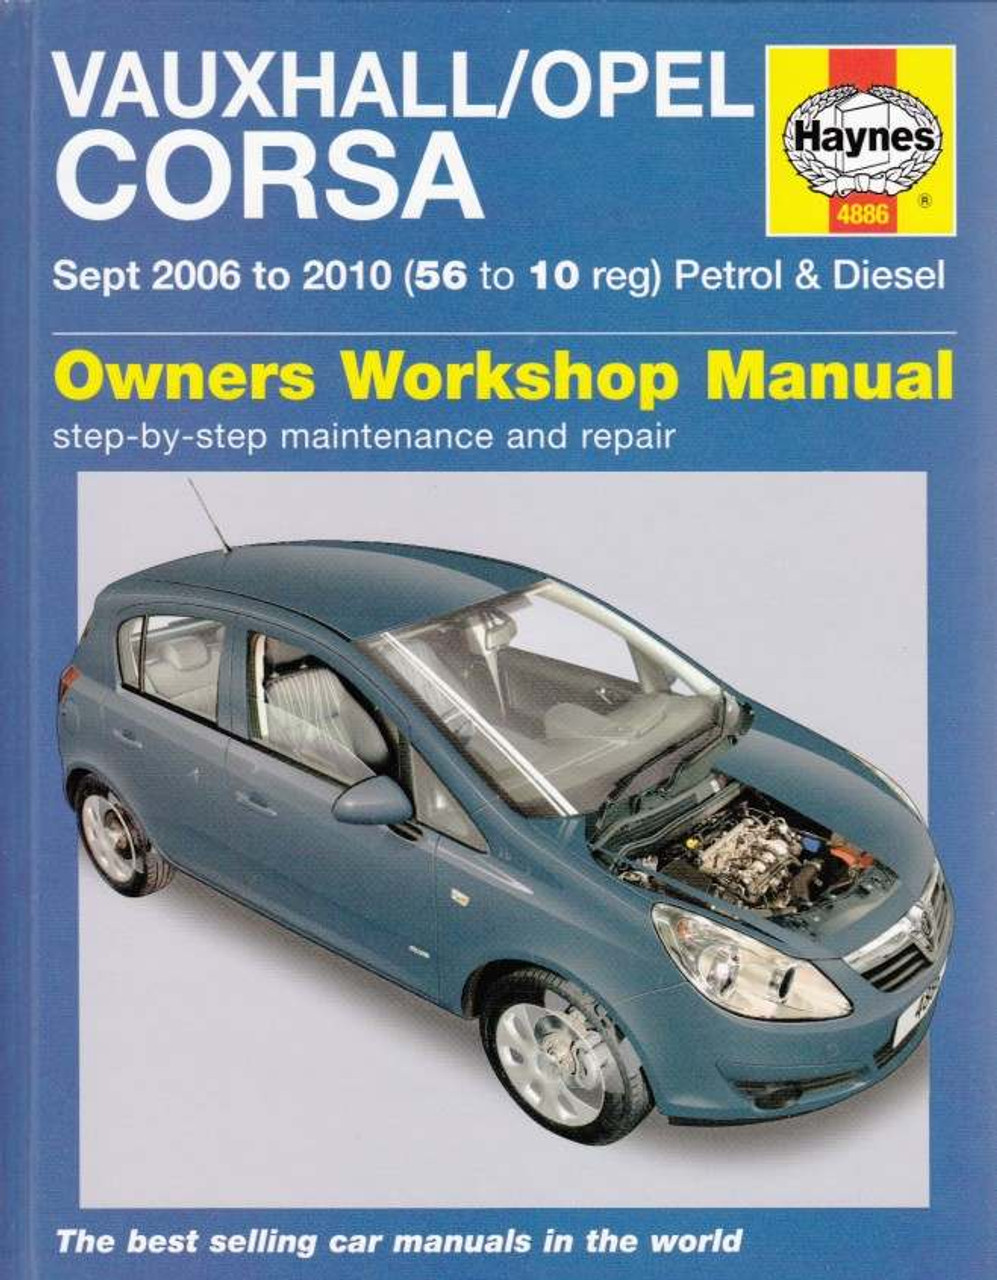 buy holden barina vauxhall opel corsa 2006 2010 workshop manual rh automotobookshop com au vauxhall/opel corsa service and repair manual vauxhall/opel corsa b workshop manual